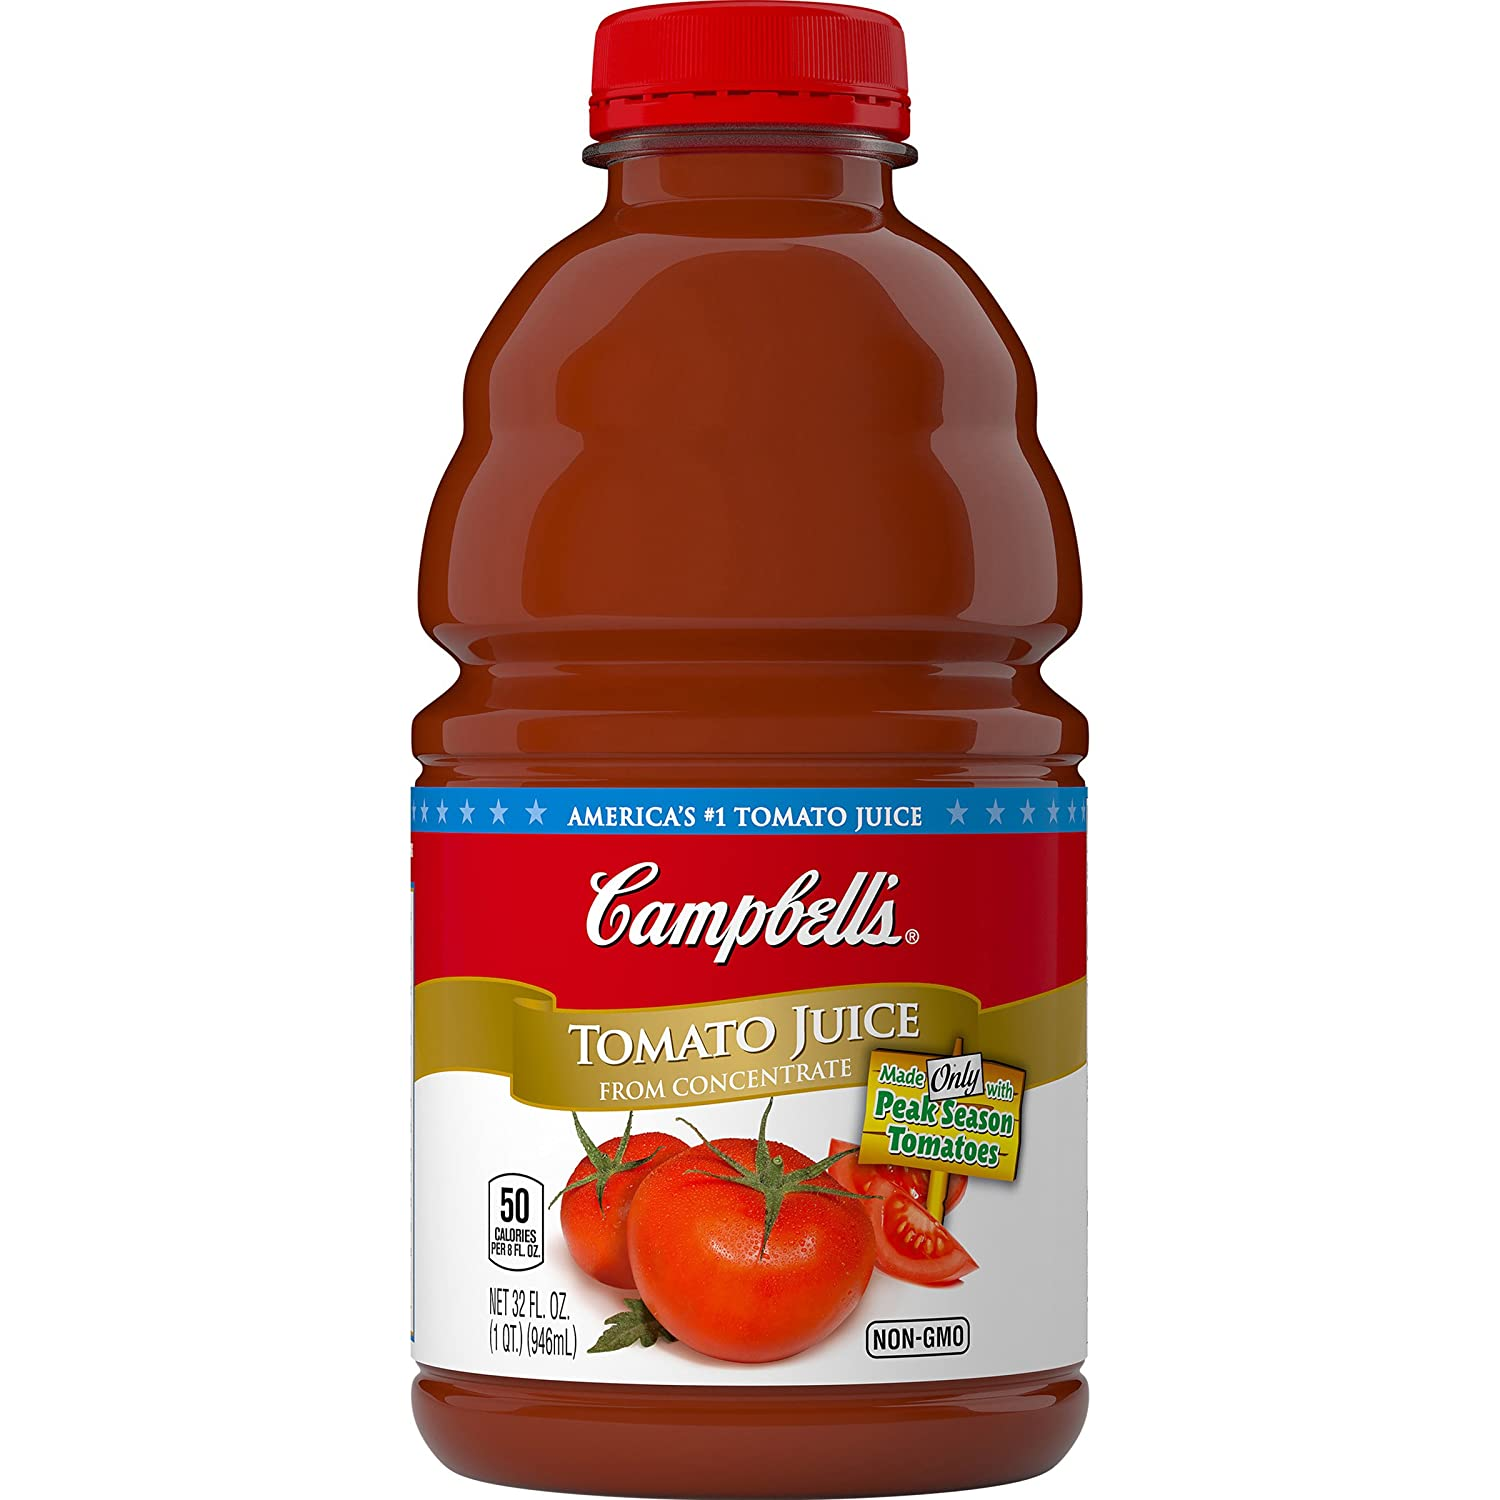 Campbell's Tomato OFFicial site Juice half 32 oz. Bottle 8 Pack of